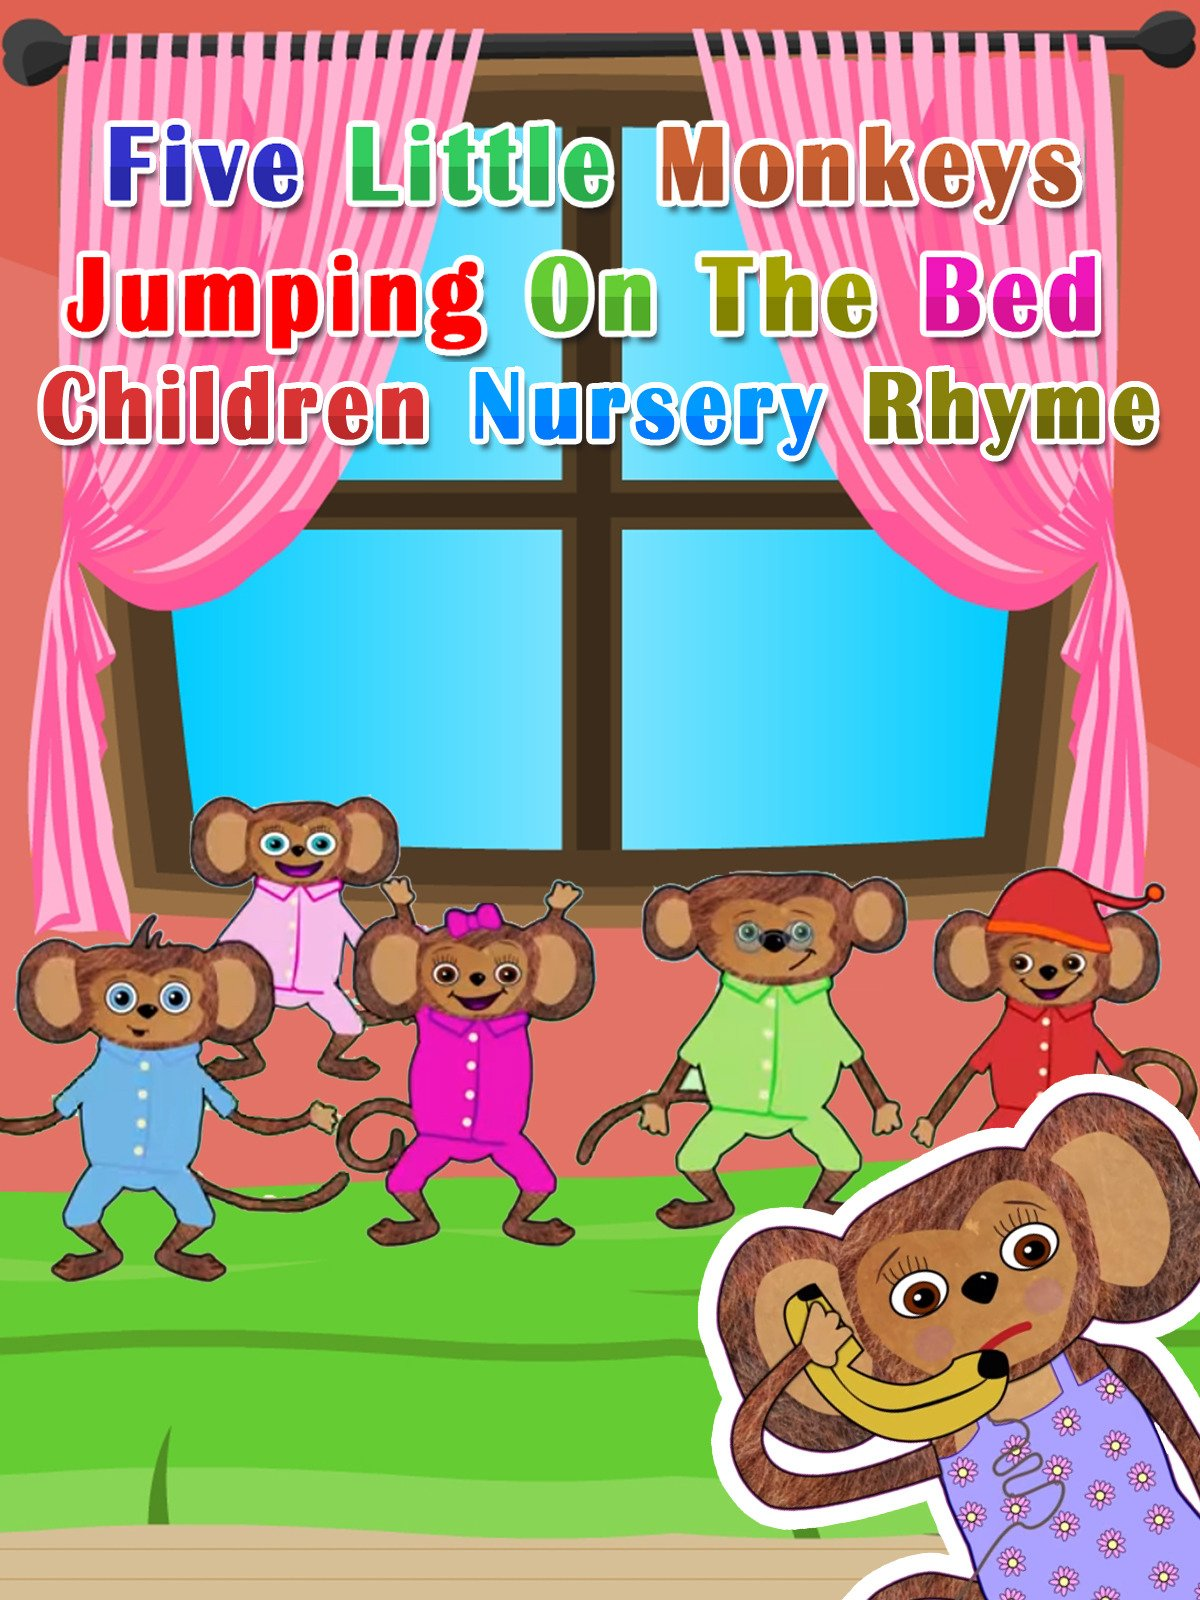 Five Little Monkeys Jumping On The Bed Children Nursery Rhyme on Amazon Prime Video UK